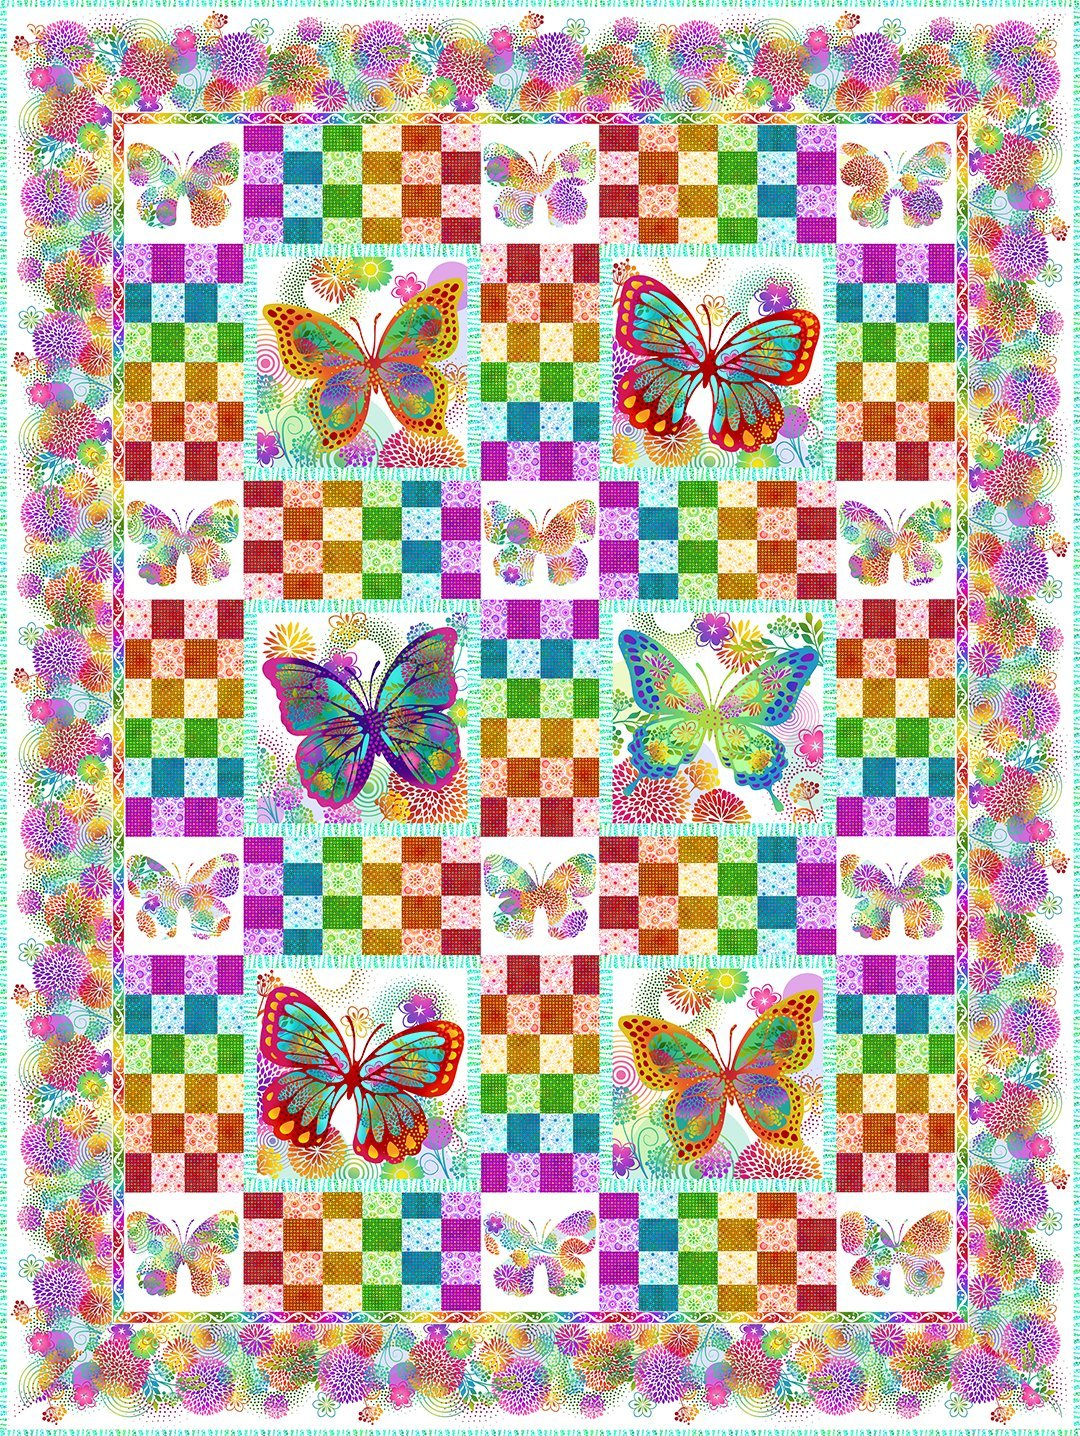 In The Beginning - Unusual Garden II - Butterfly Quilt Kit - WHITE